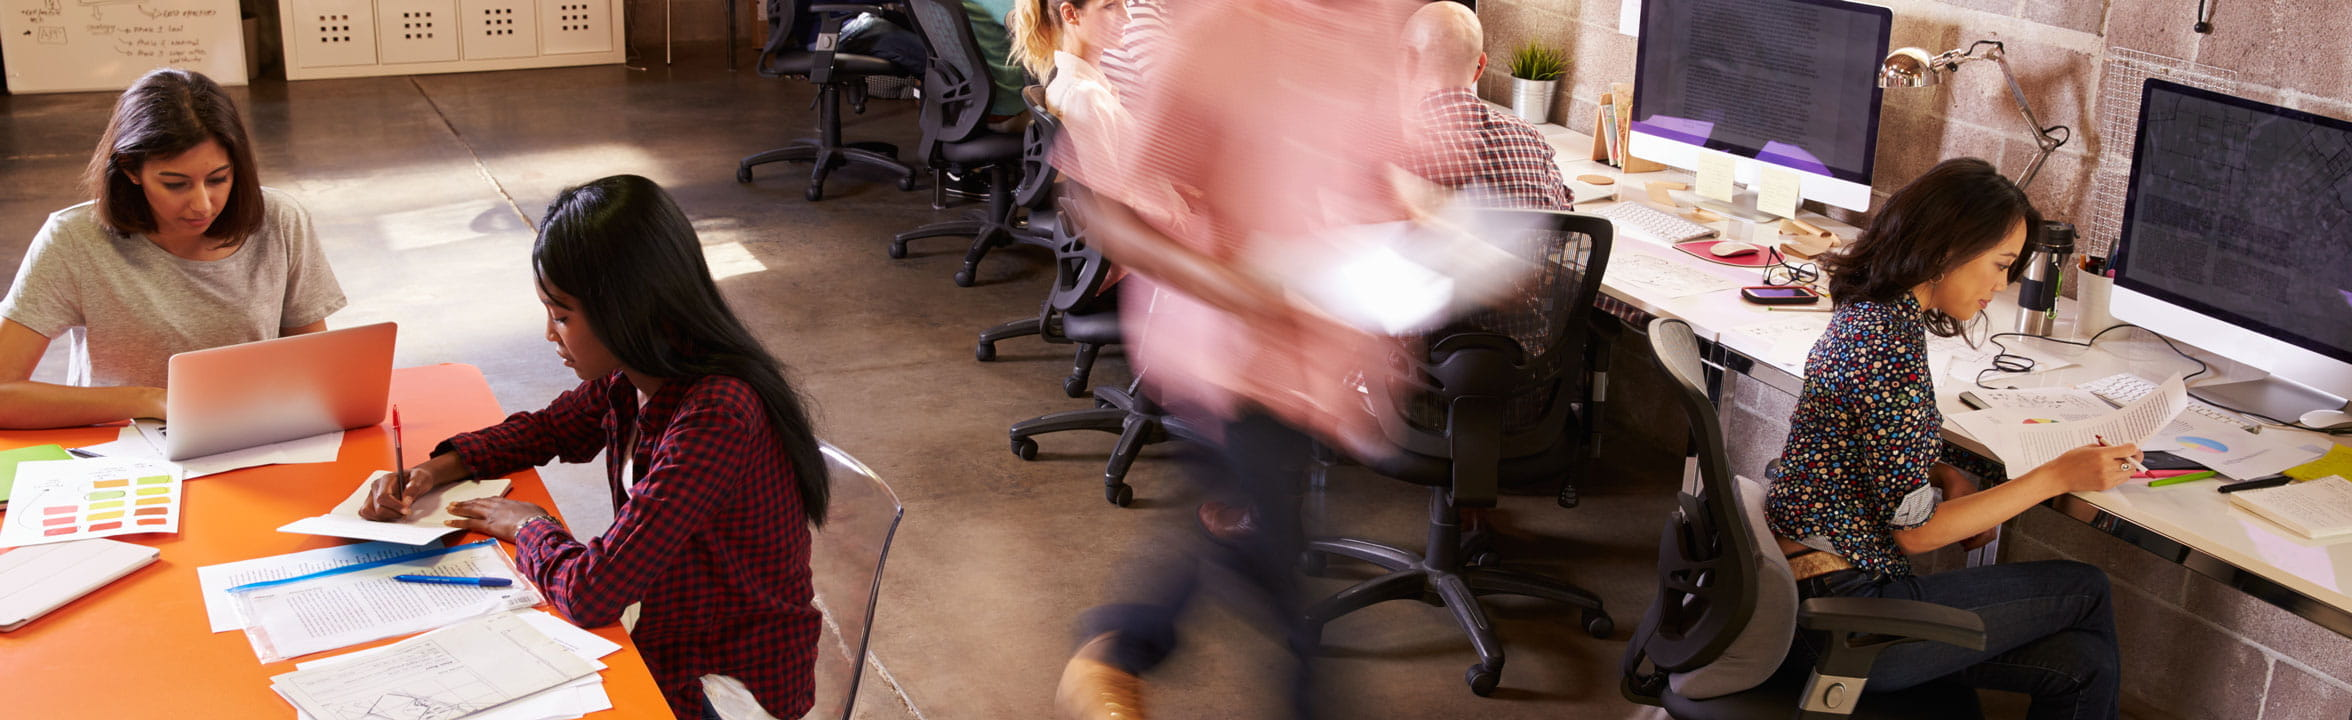 workers in coworking space blurred man walking past seated women